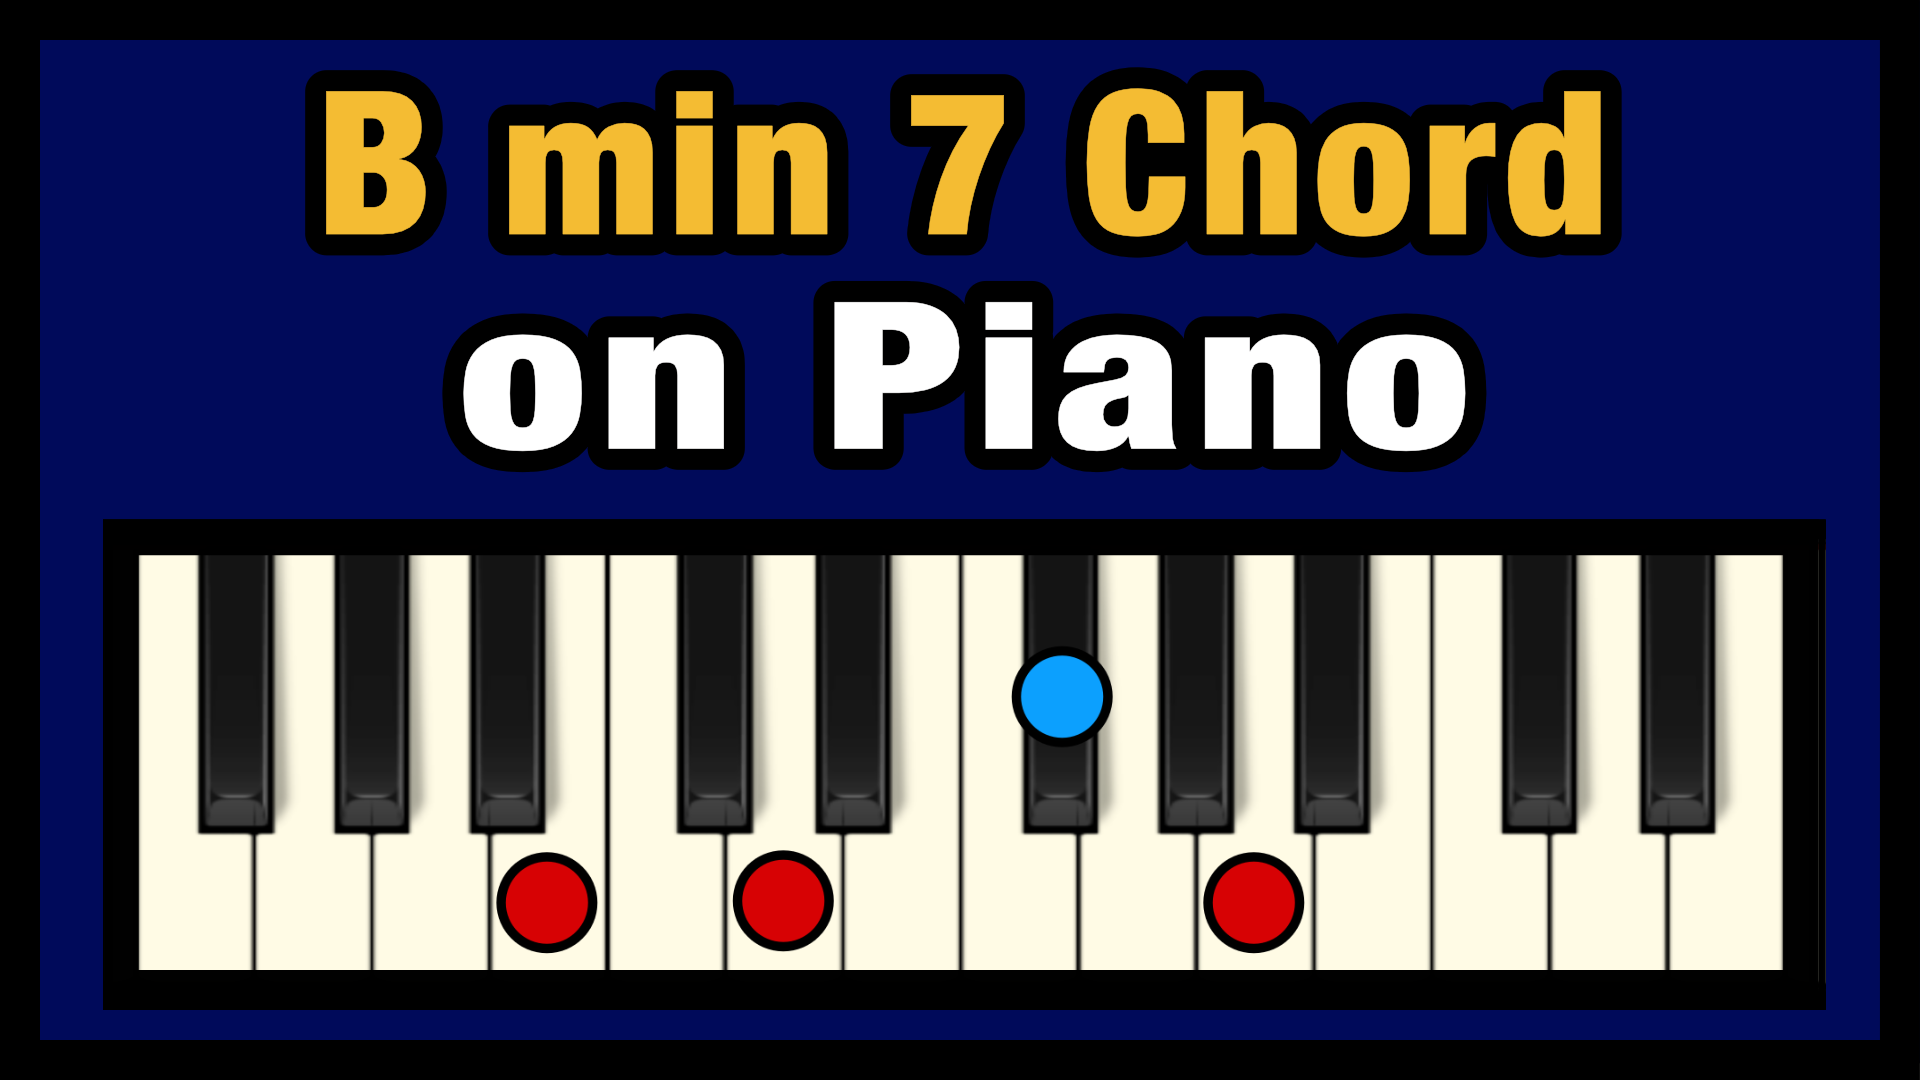 B min 15 Chord on Piano Free Chart   Professional Composers